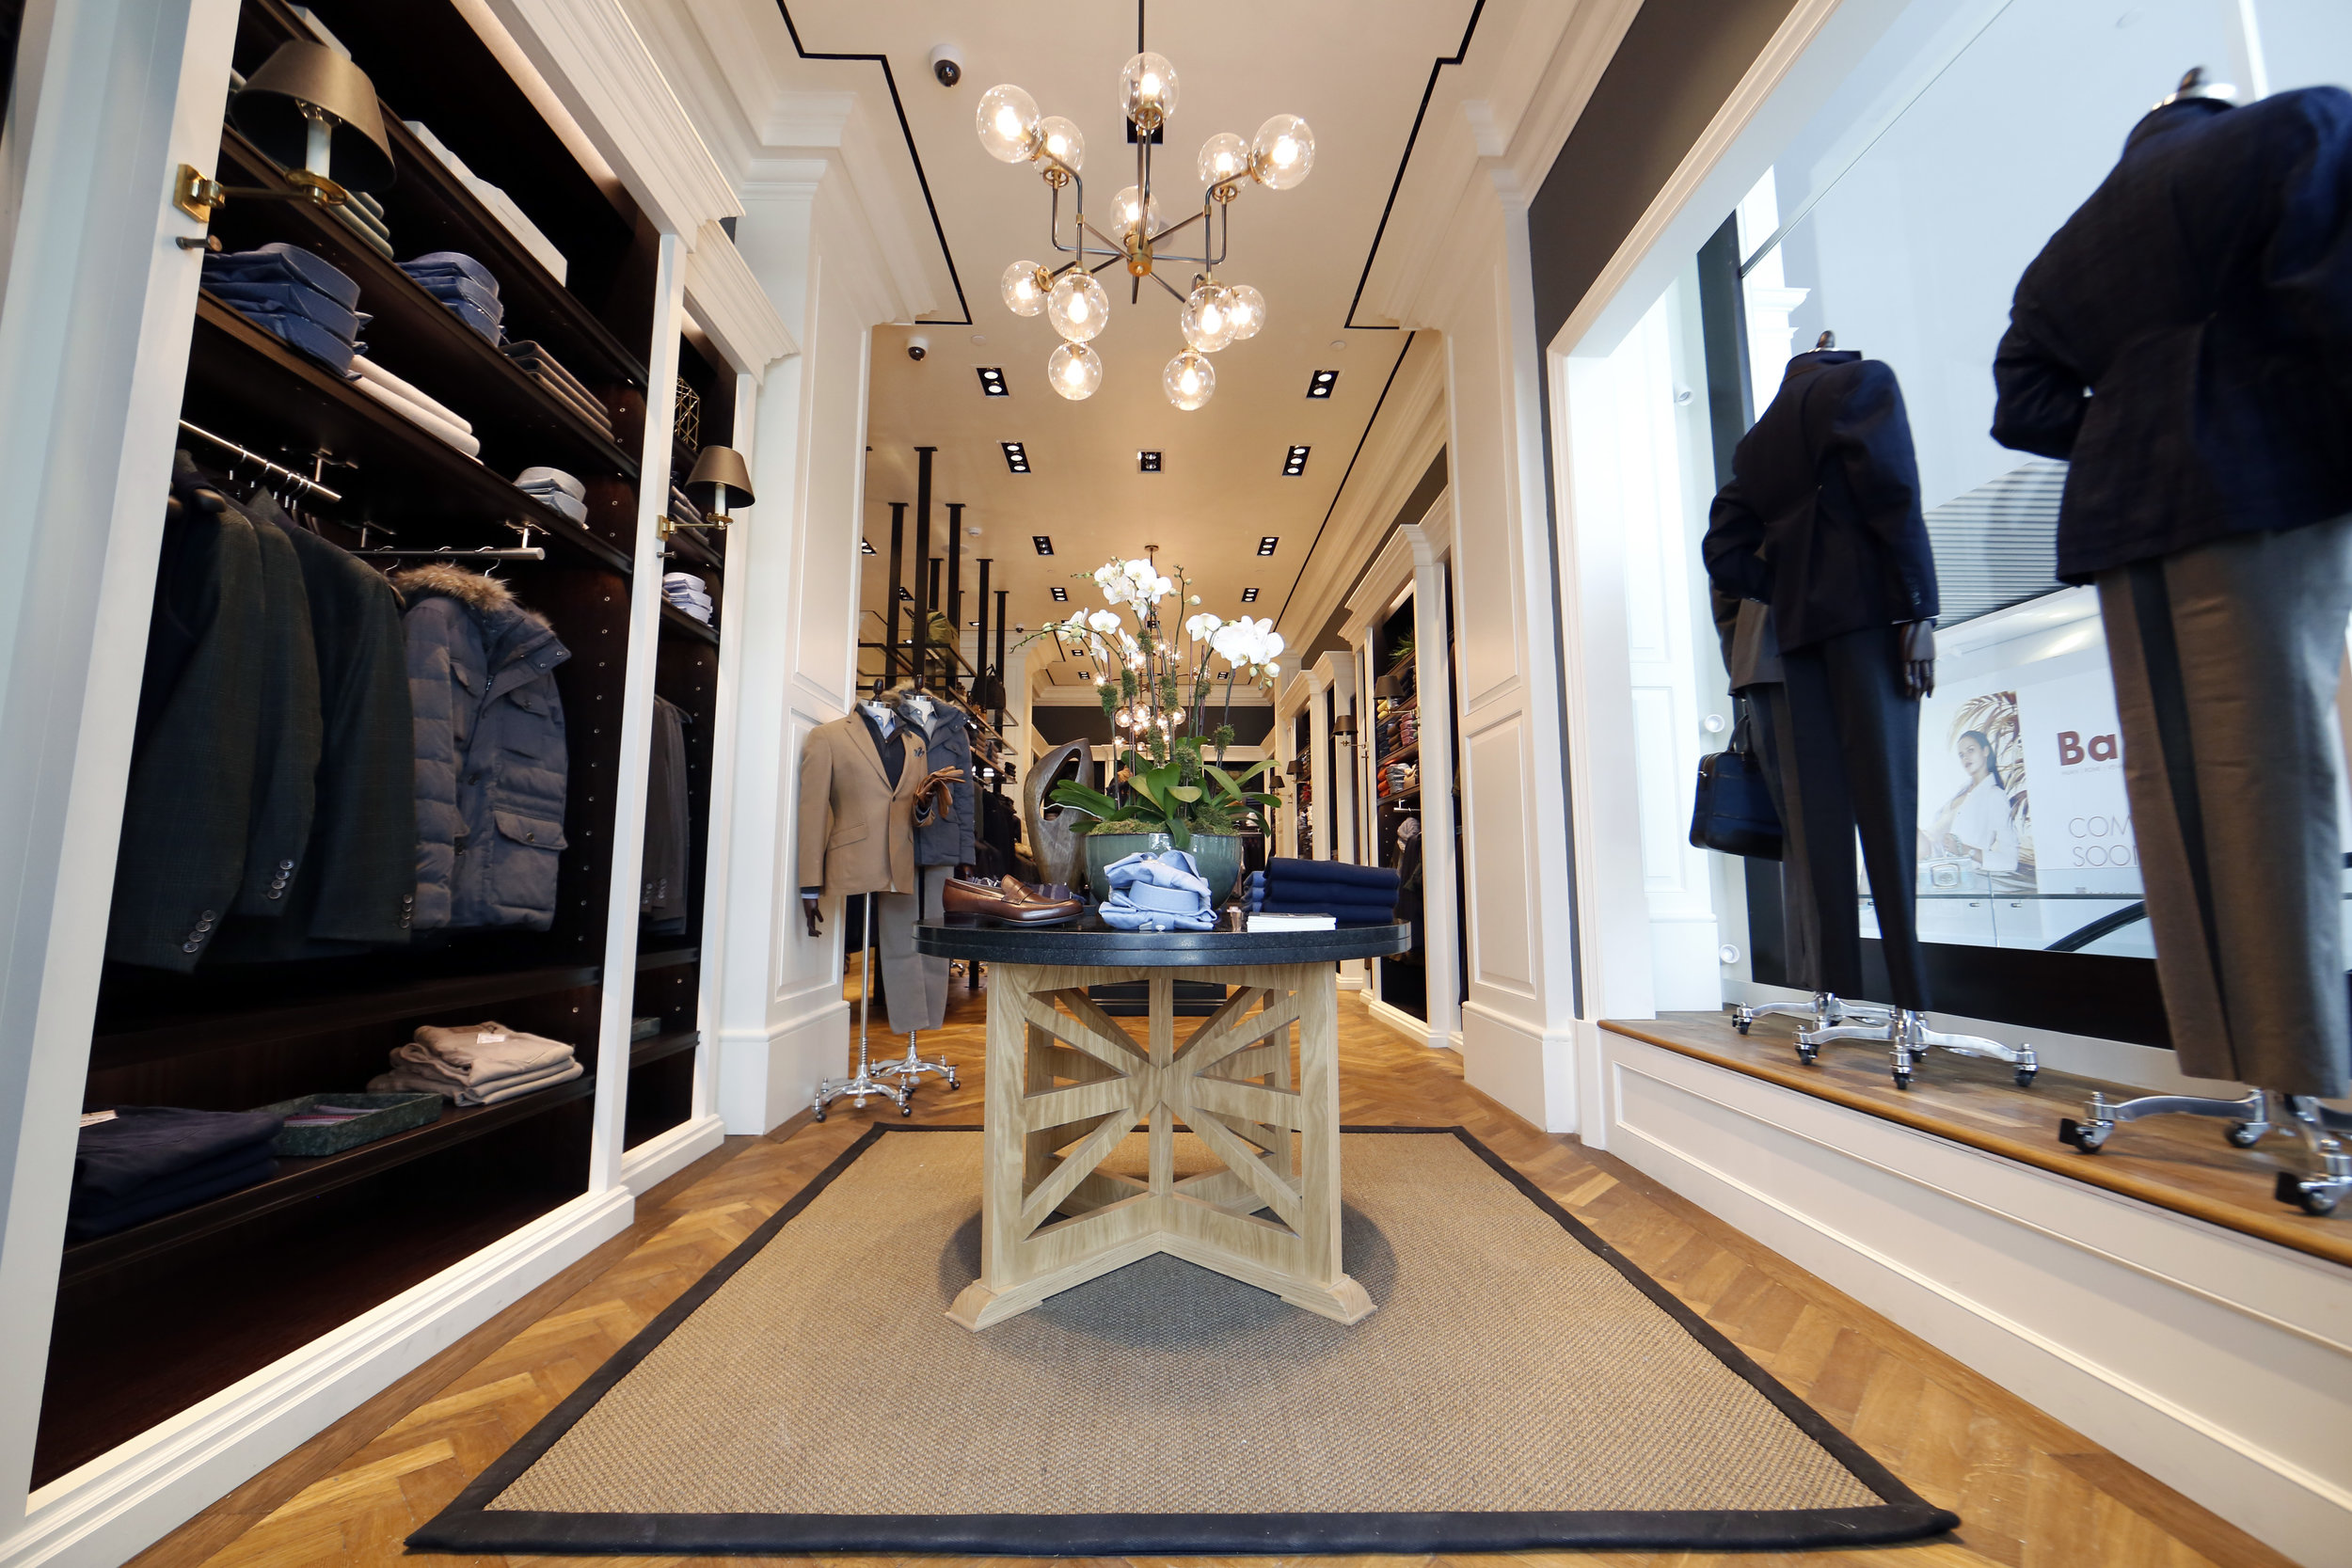 Brightly lit display table featuring winter fashion by Hackett London in Woodbury Common Premium outlet, New York. MEP designed by 2L Engineering.